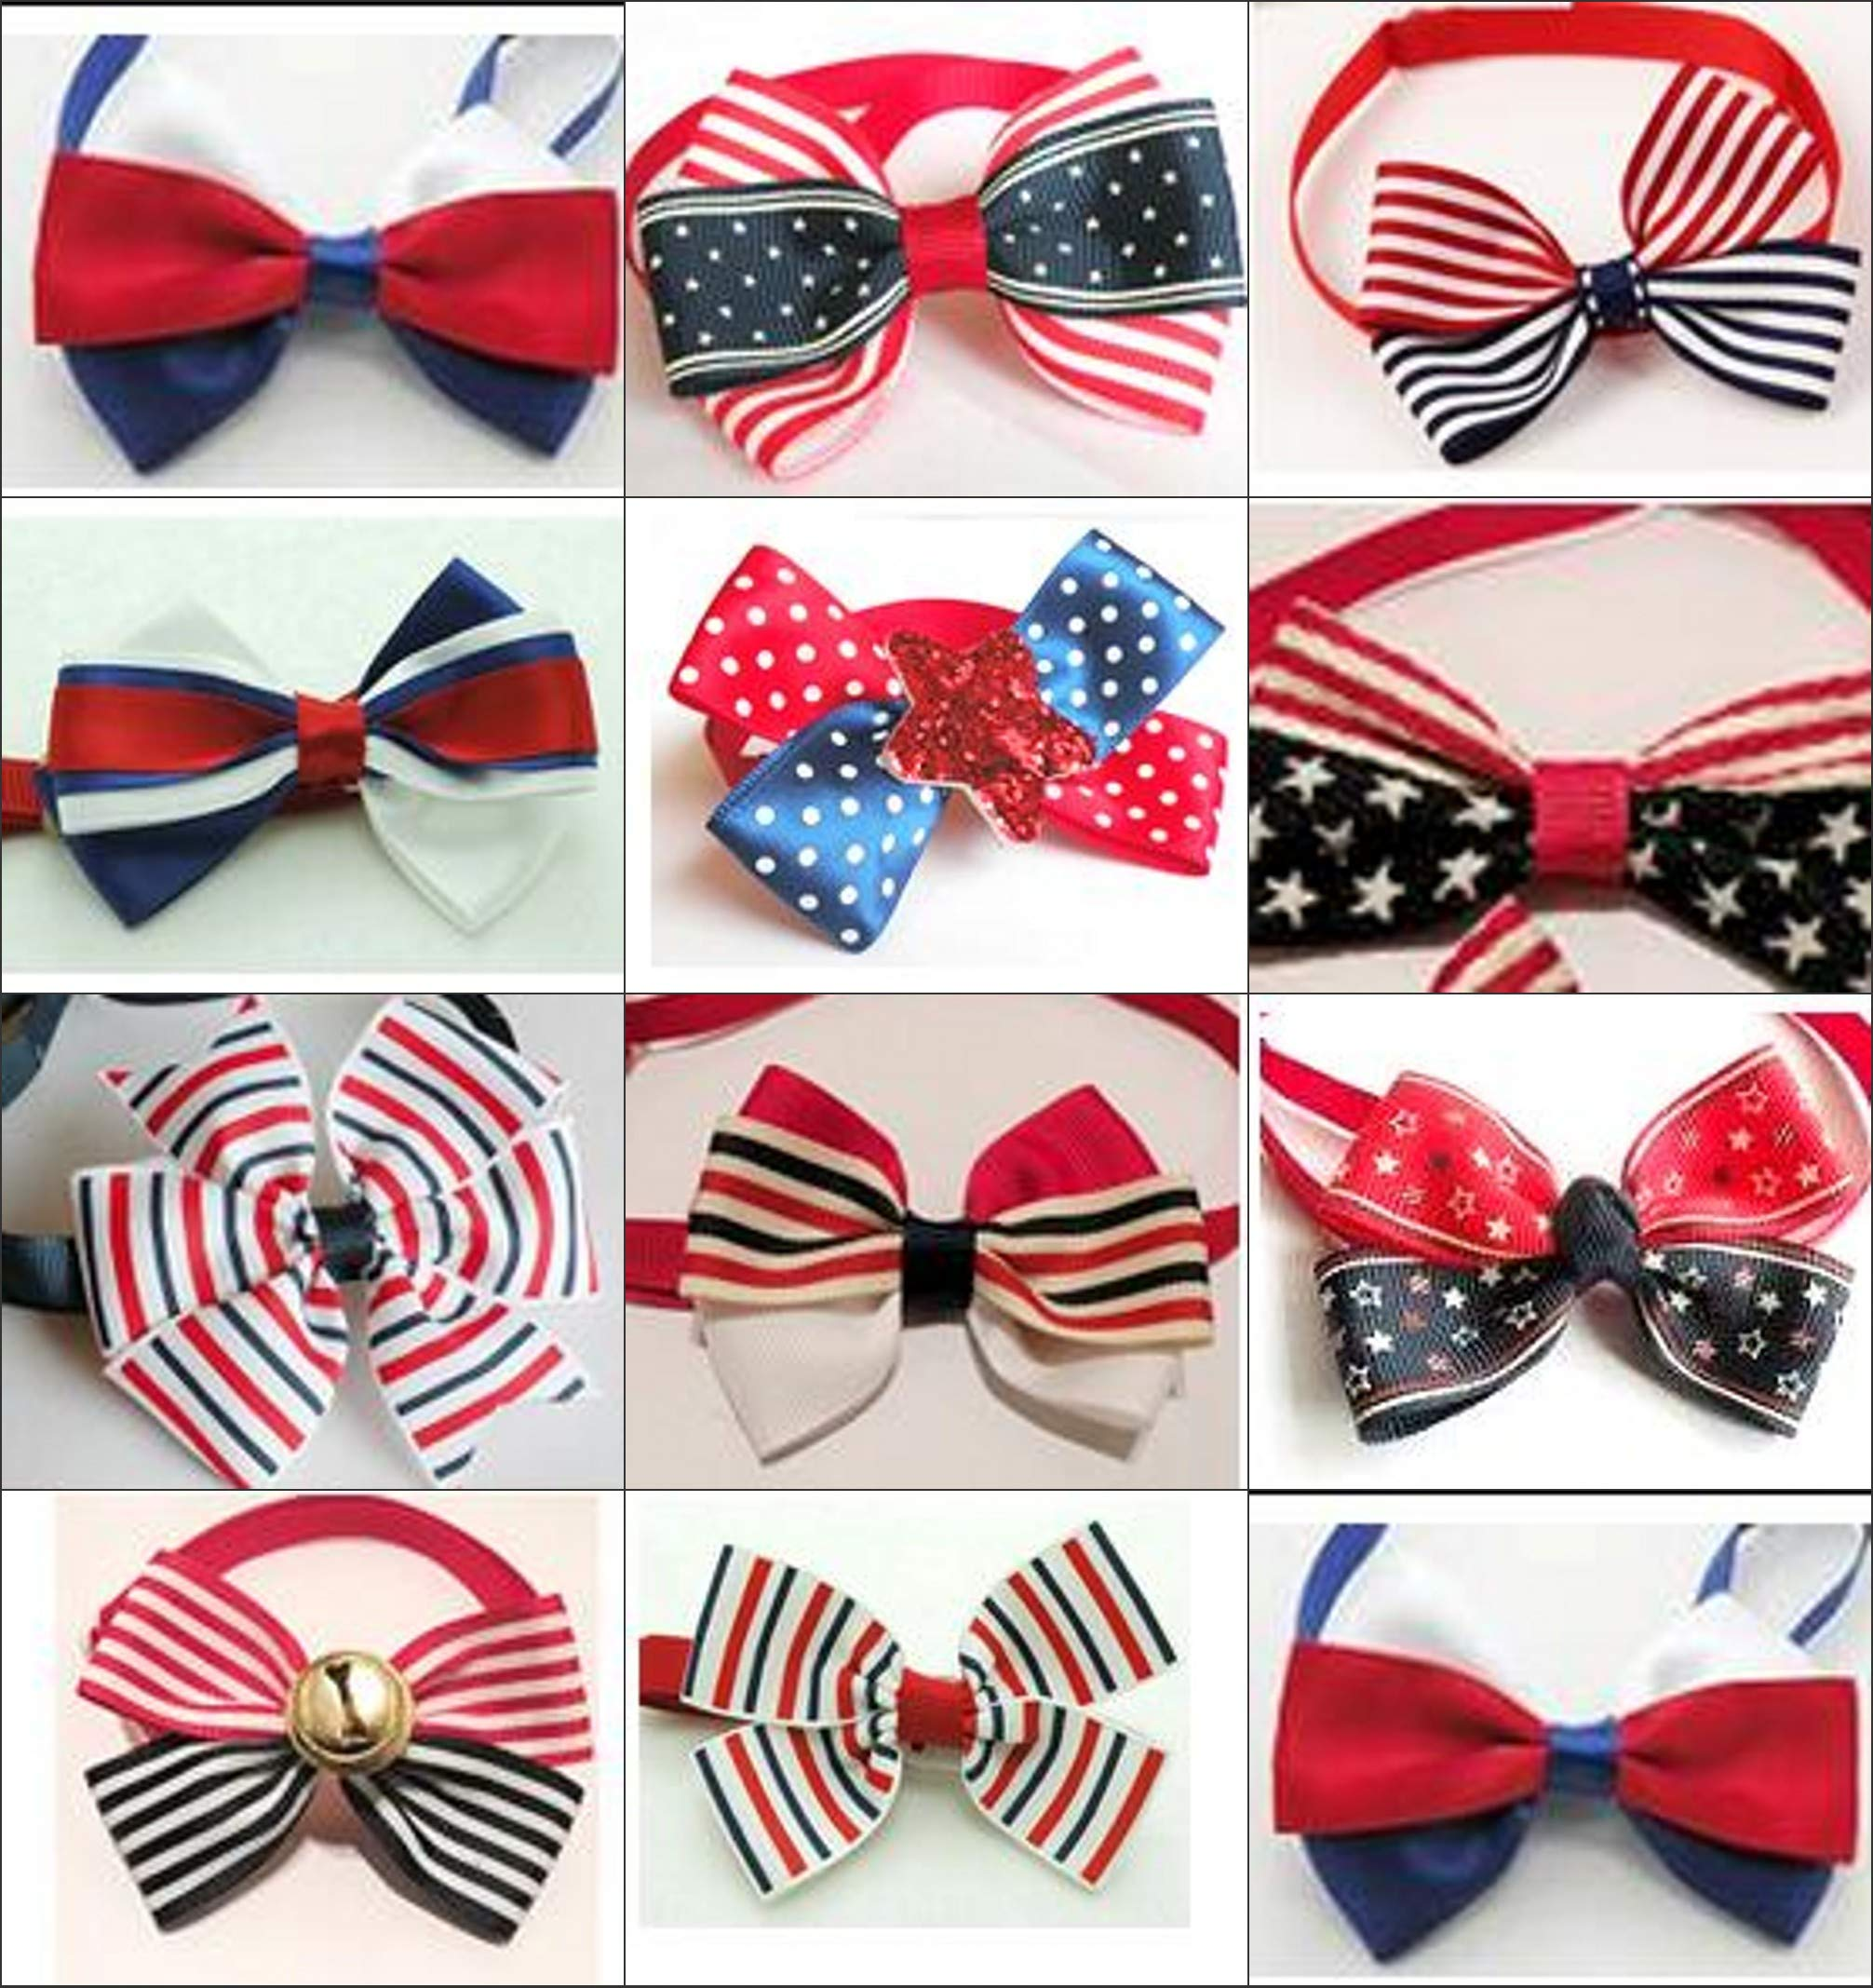 PET SHOW 150pcs Handmade Small Dogs Cats Patriotic Bow Ties 10 Styles Assorted Bowties Pet Grooming Accessories by PET SHOW